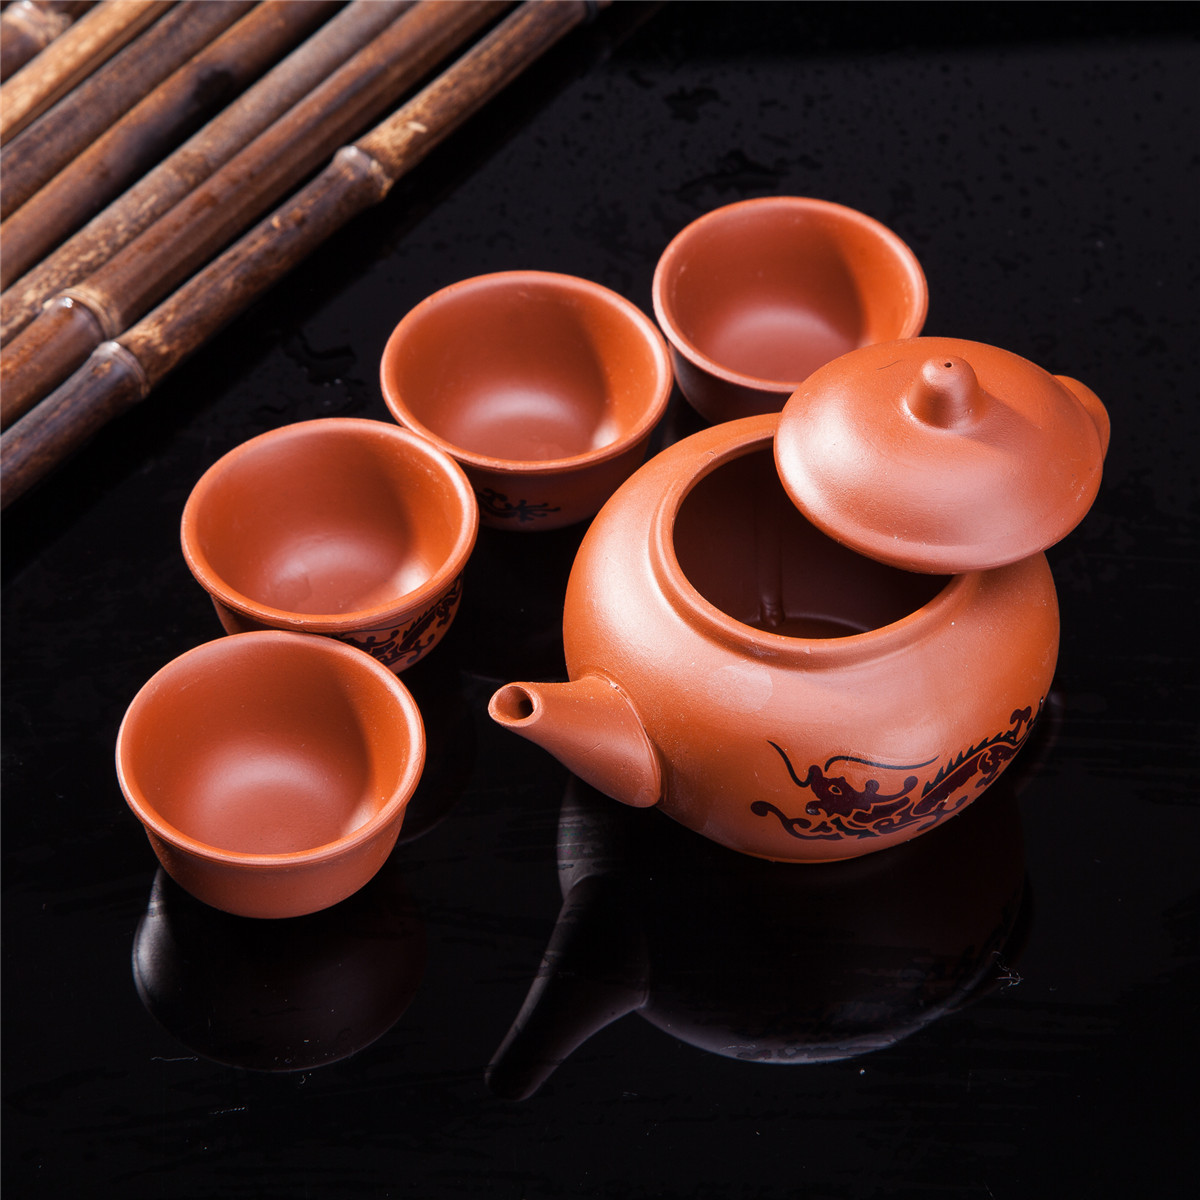 Copyright 2018 Thy Trading. All Rights Reserved. Import u0026 Wholesale Asian Oriental Furniture - Home decor - Gift u0026 Collectibles. & Exquisite 5 PCS Asian Dragon Design Purple Clay Tea Pot Tea Cups Set ...